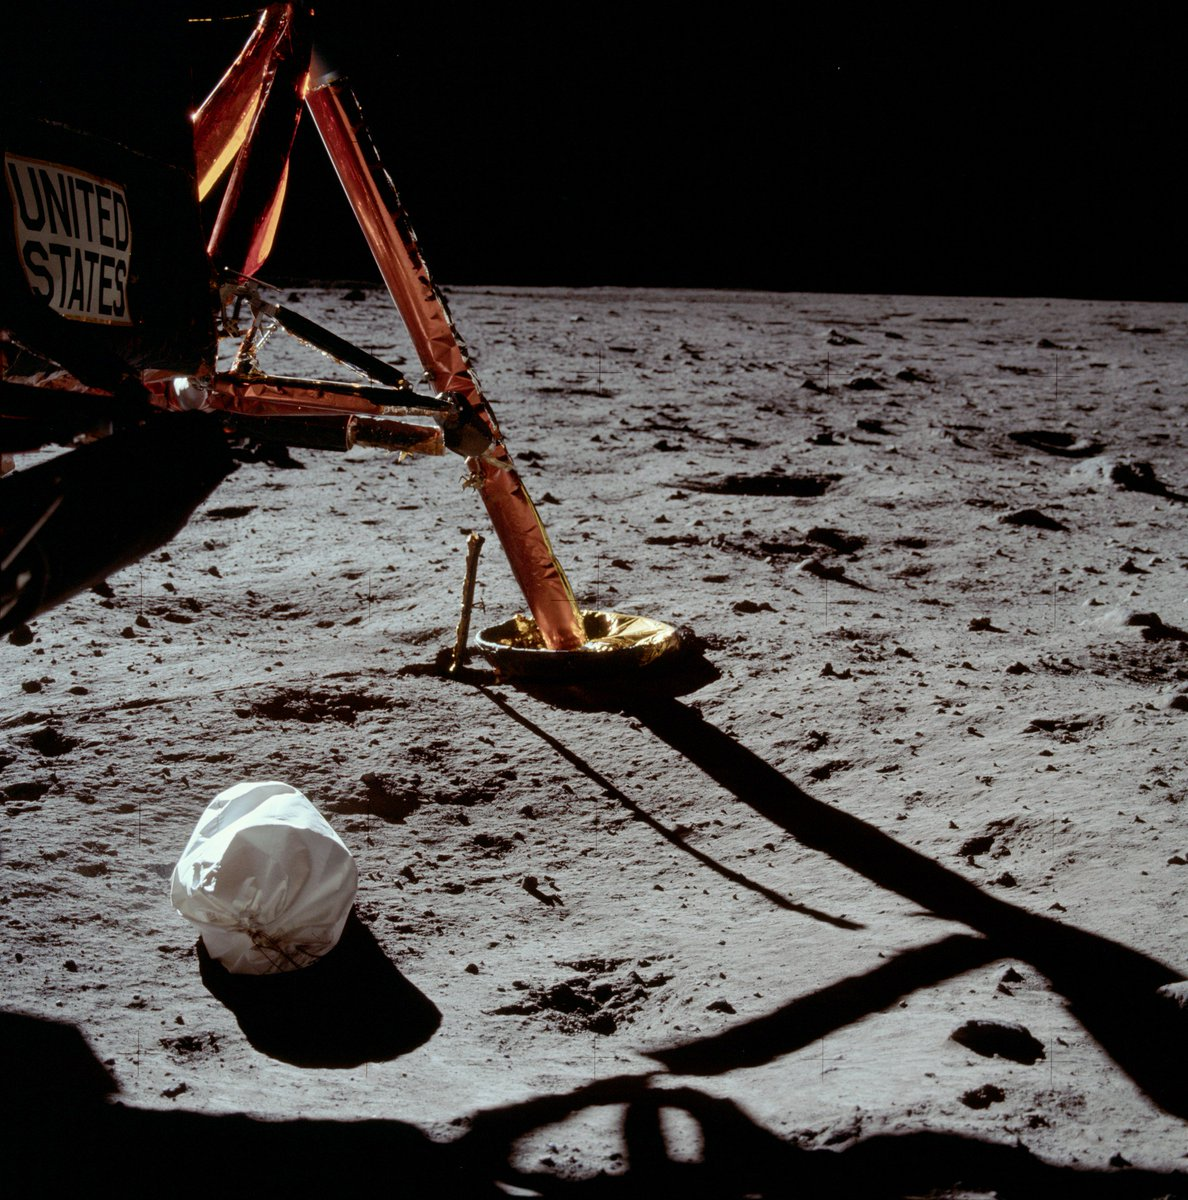 A picture is worth a thousand words. Neil Armstrong took this first lunar spacewalk photo on this day in 1969.  #Apollo11